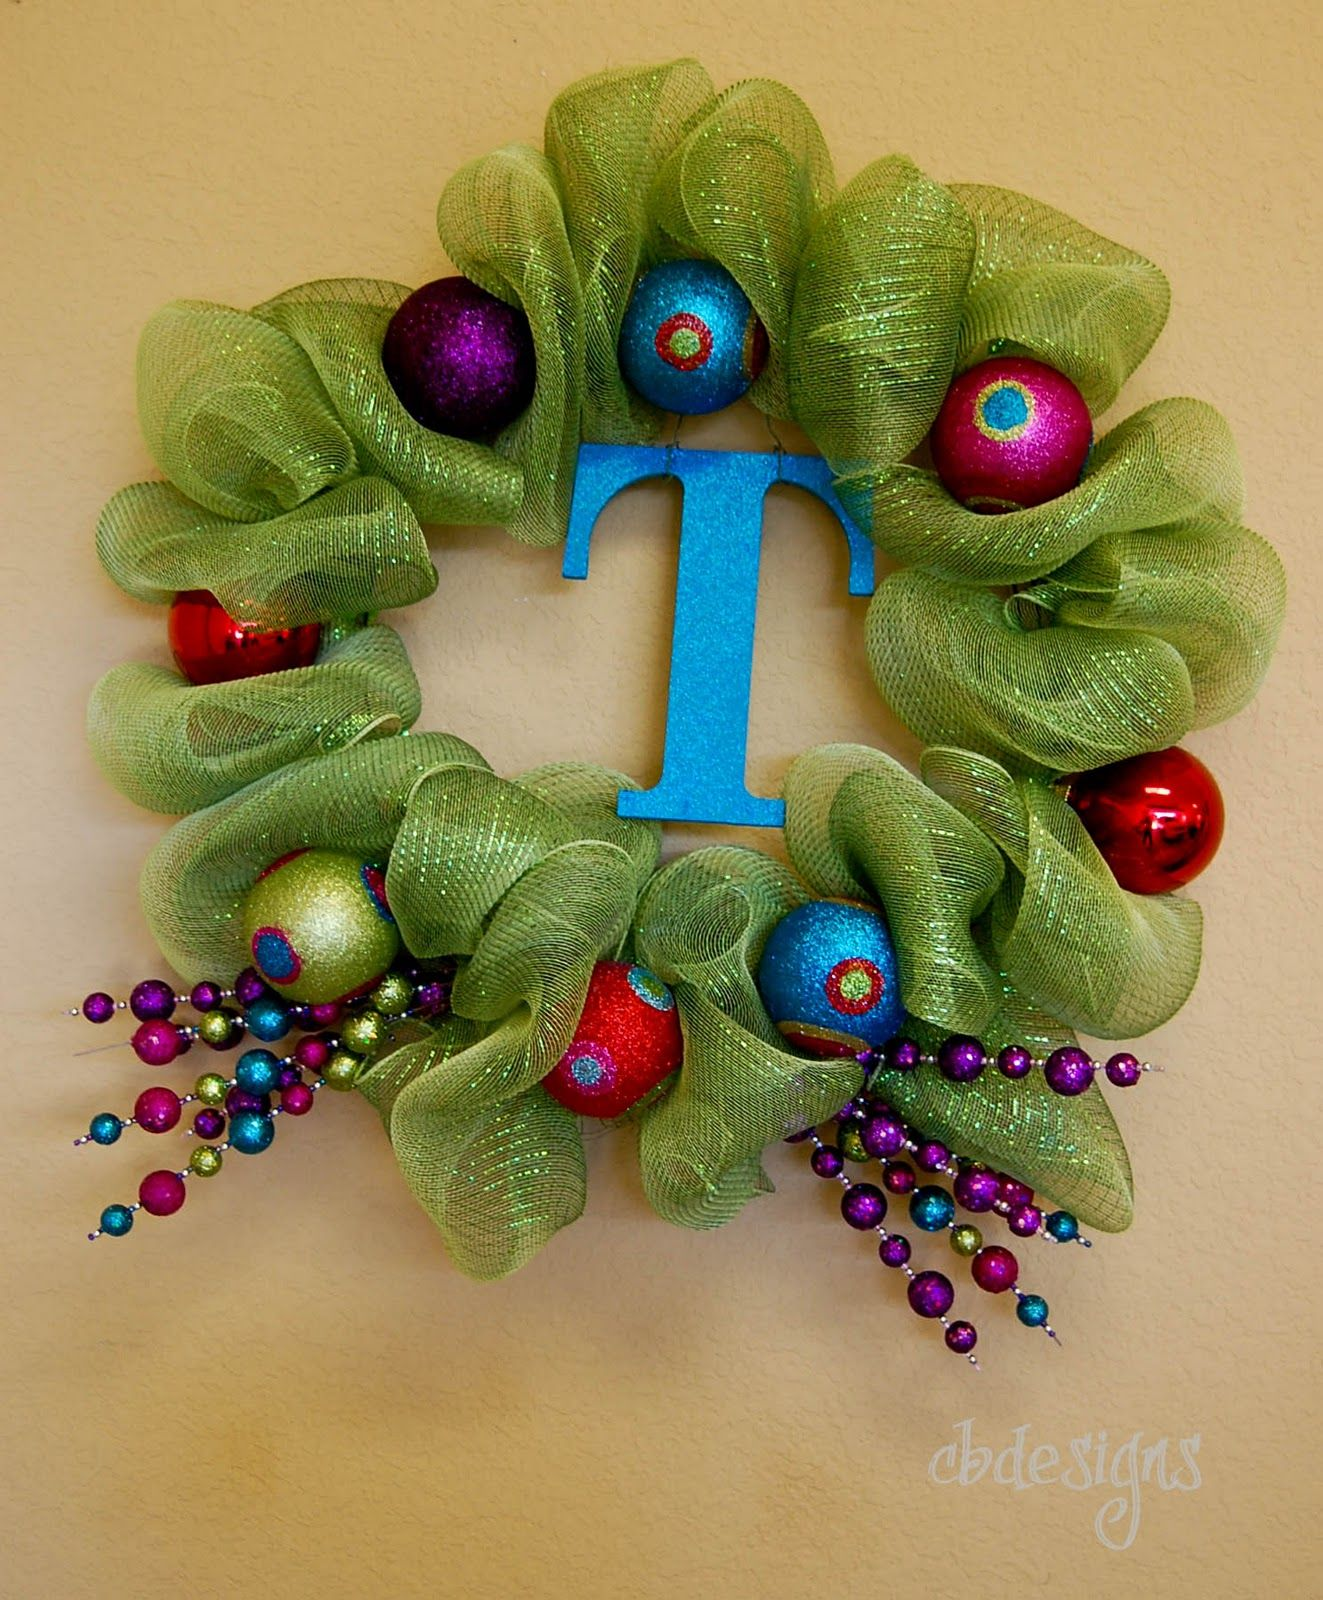 cbdesigns Christmas Door Hanging and a Funky Wreath